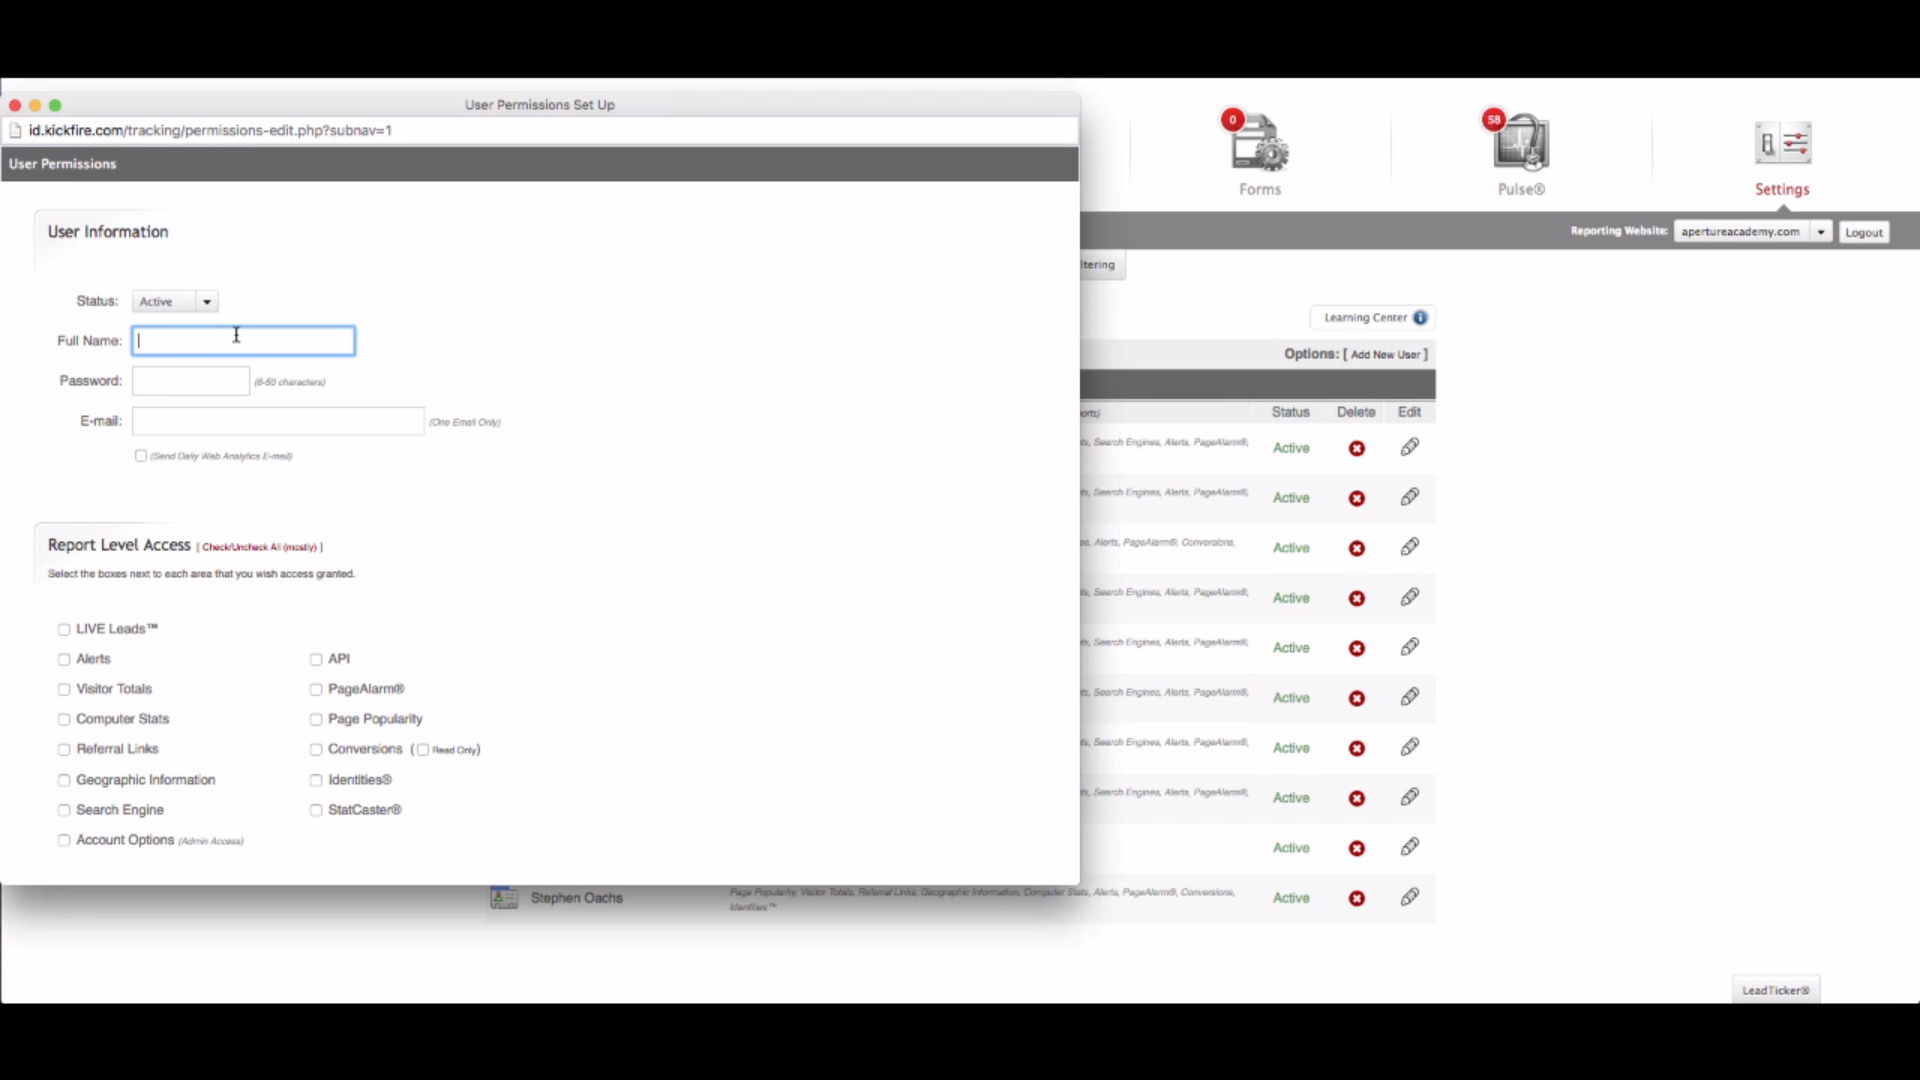 KickFire LIVE Leads - Creating user permissions